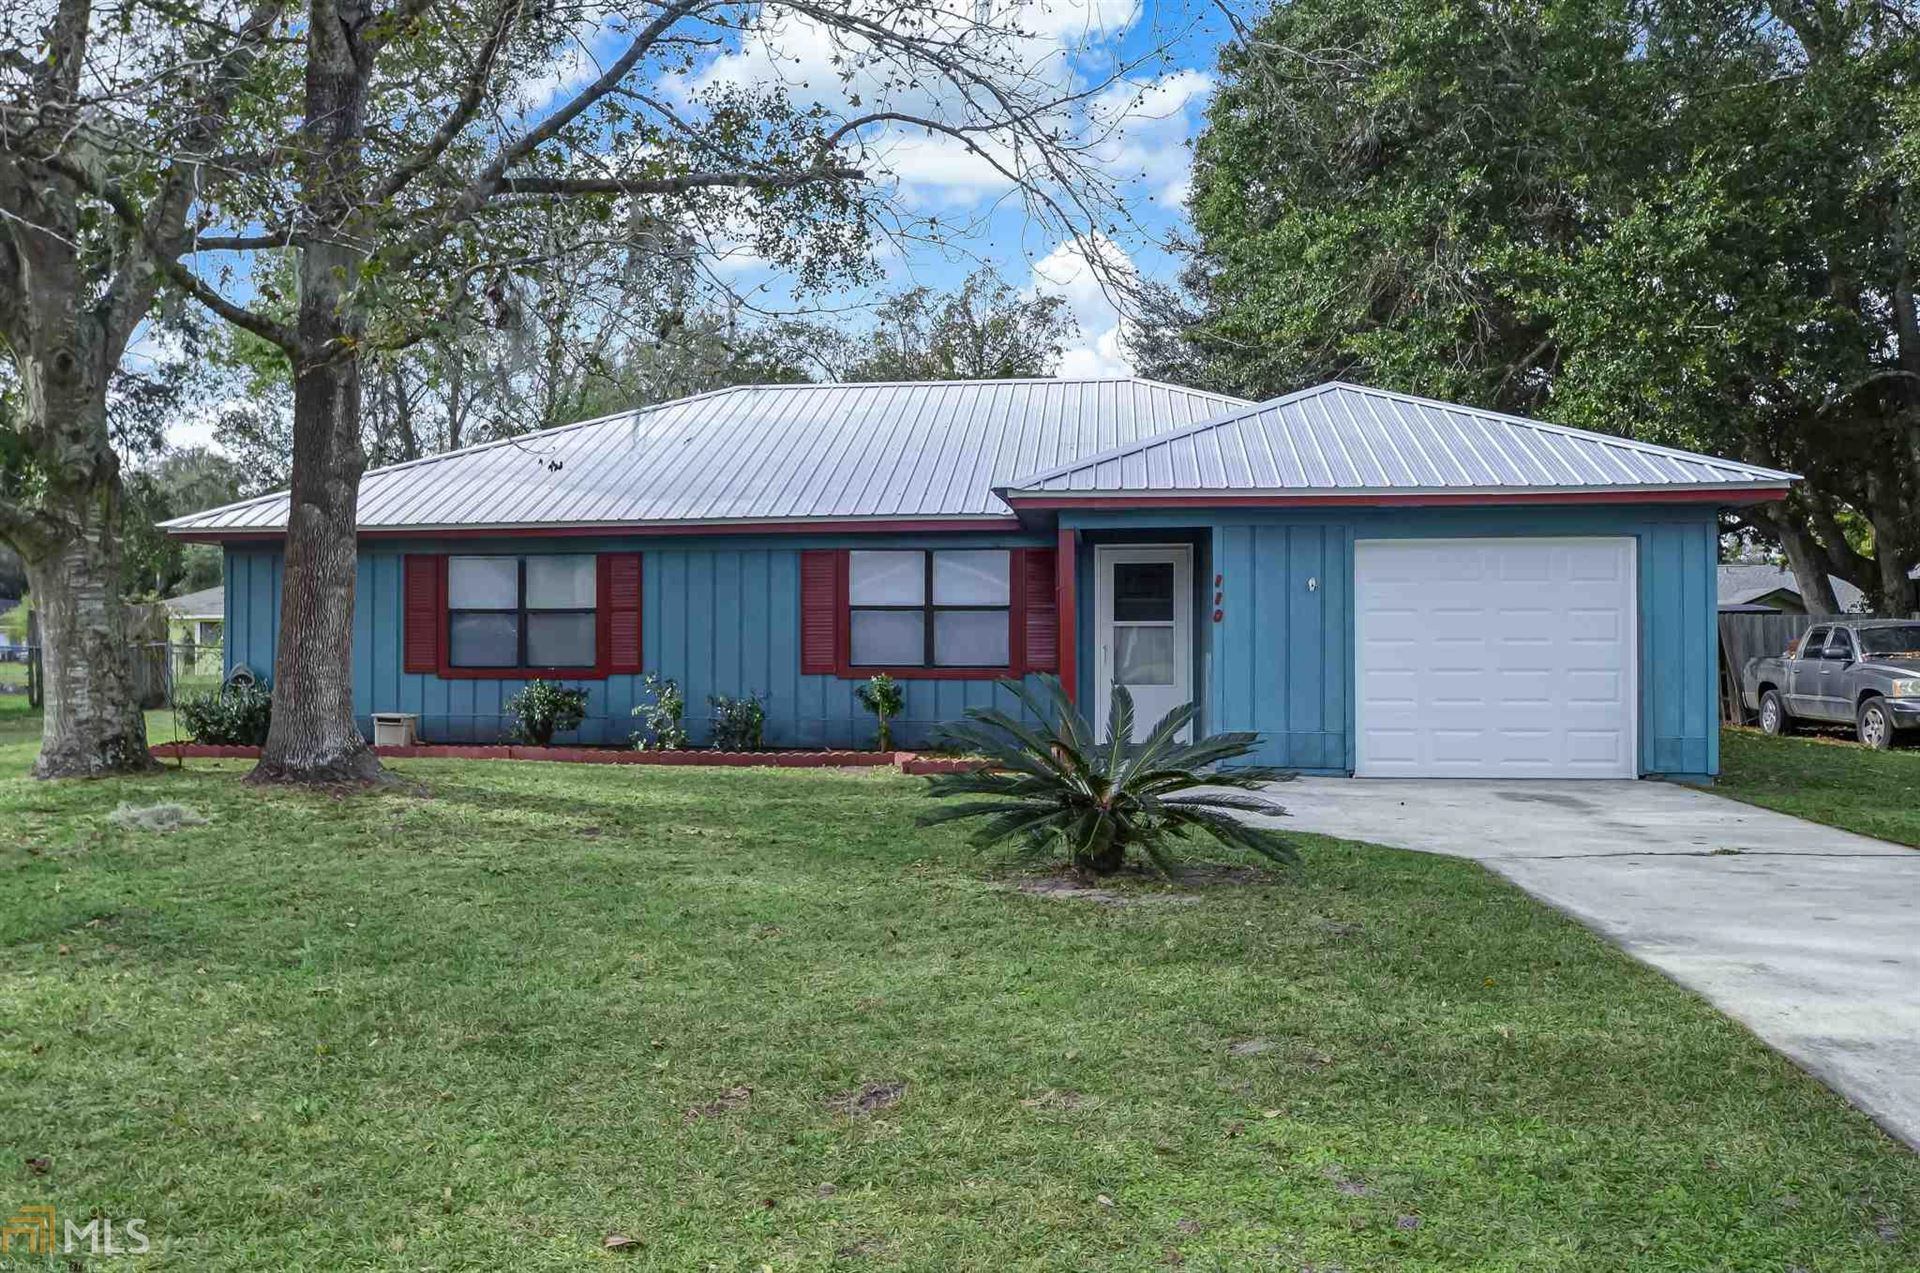 110 Pinedale St, Saint Marys, GA 31558 - MLS#: 8900571